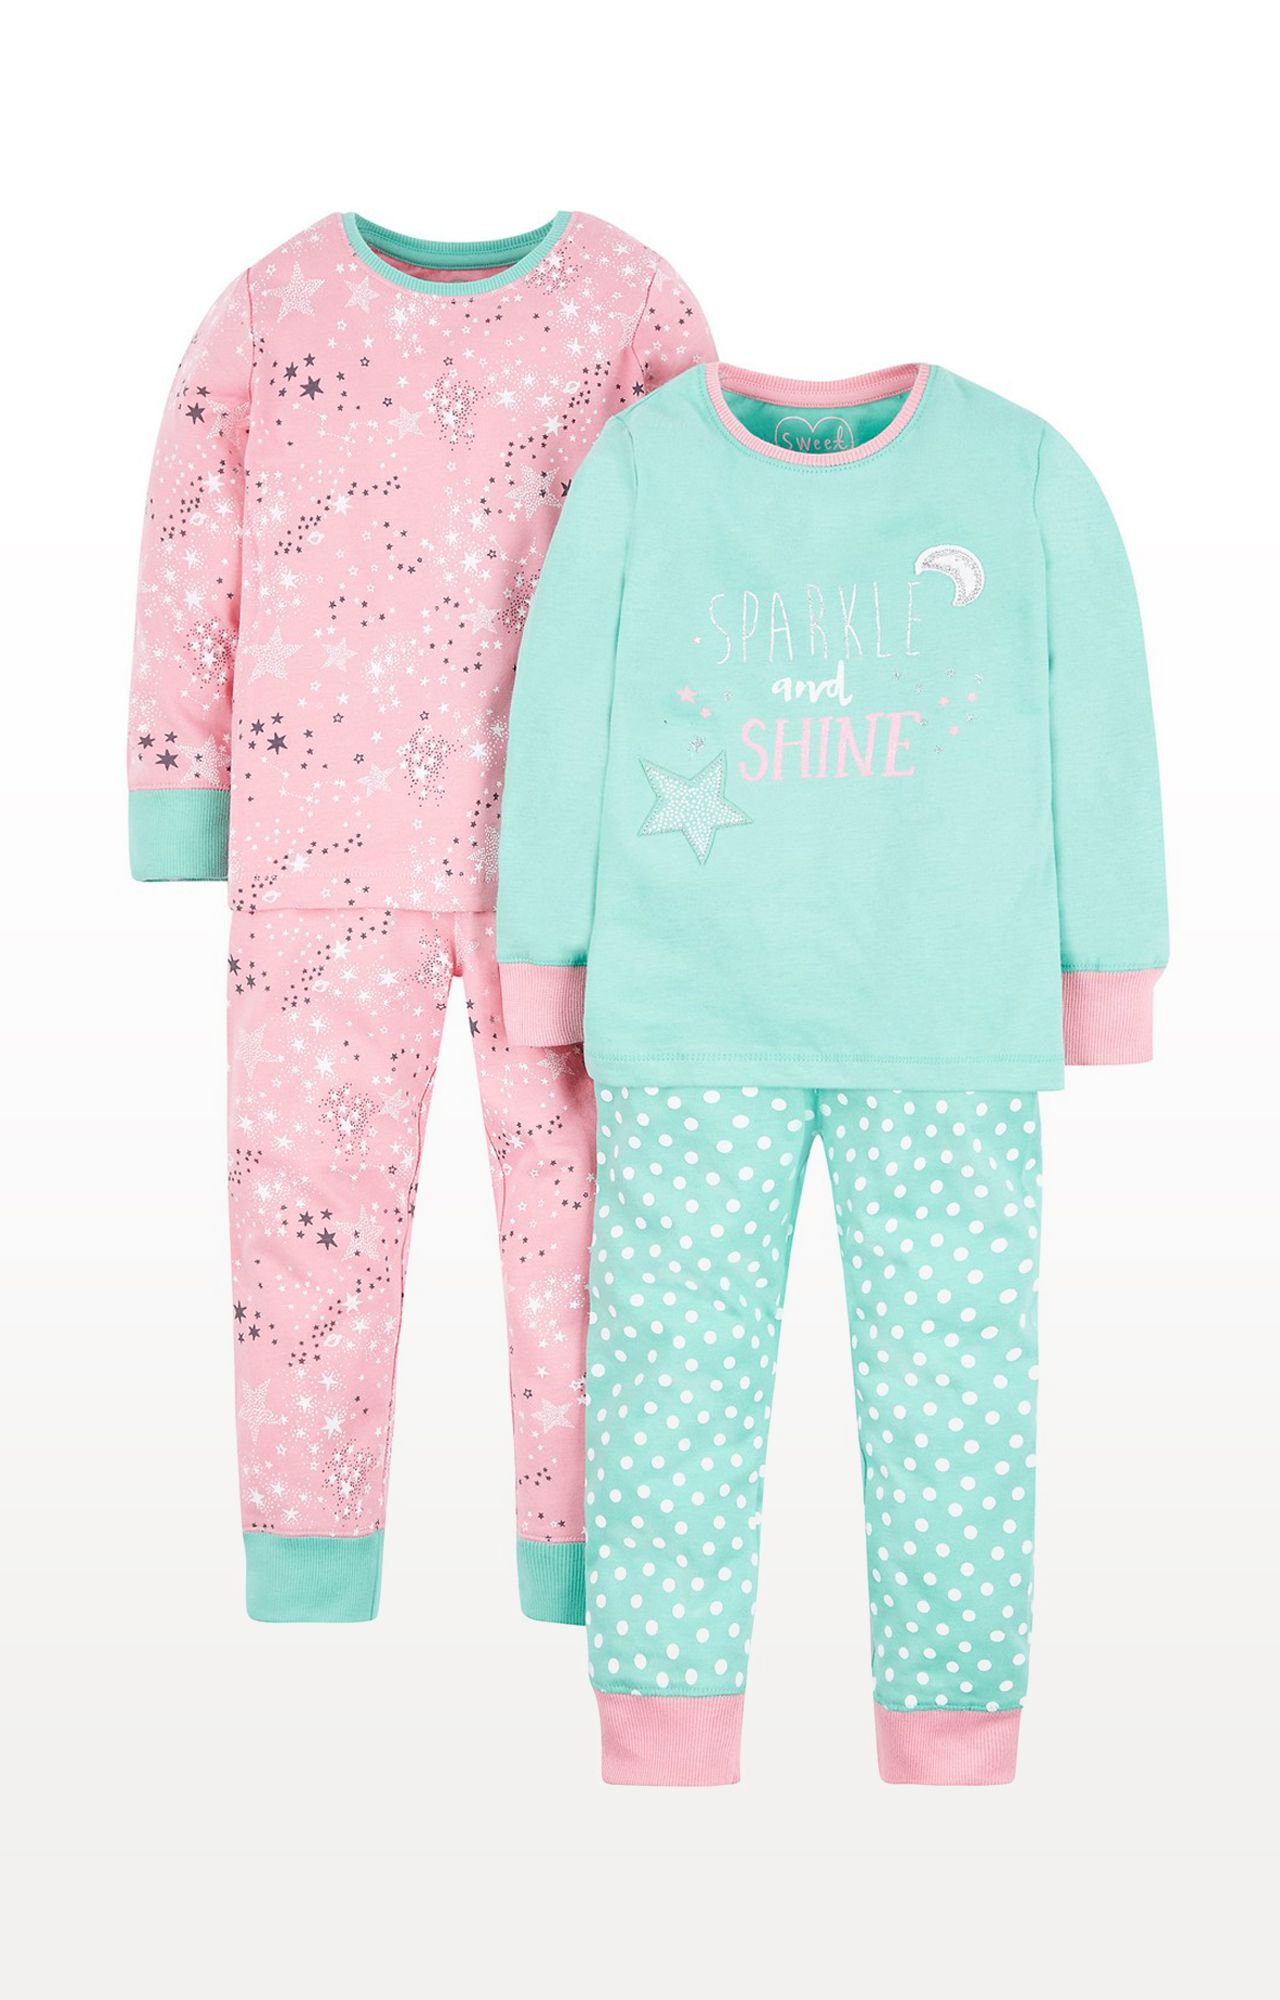 Mothercare | Sparkle and Shine Pyjamas - Pack of 2